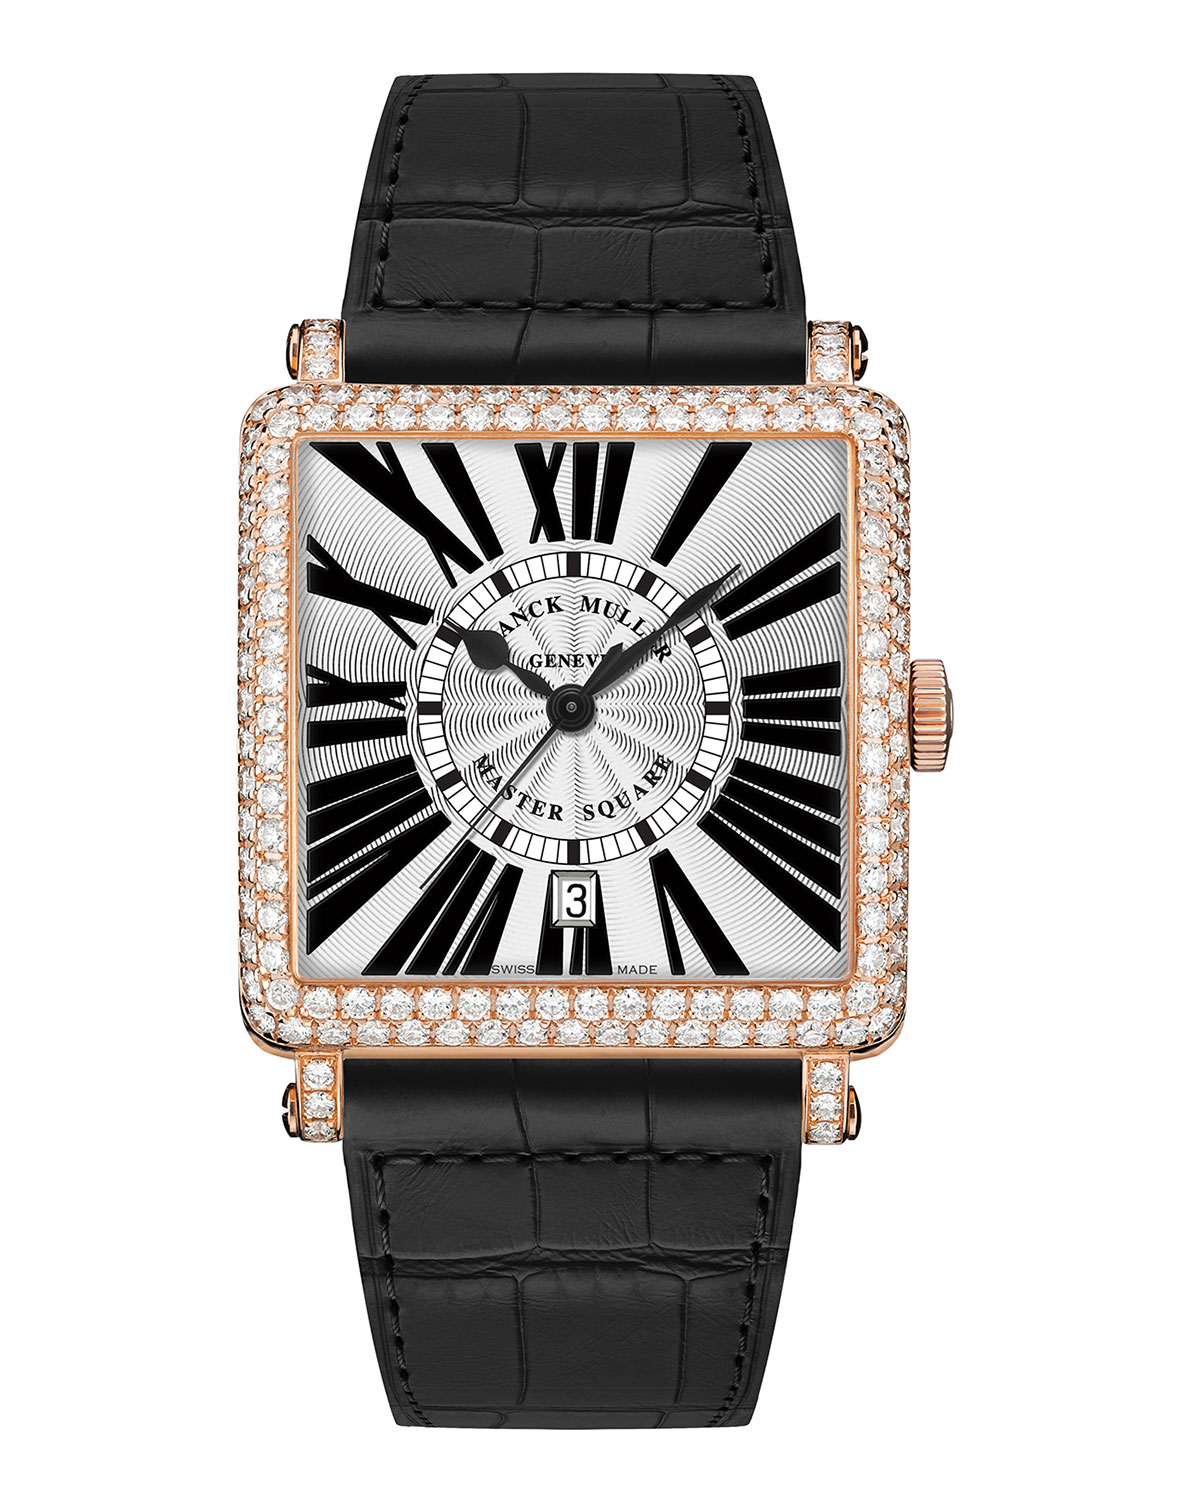 5a6c0e58f3c Franck MullerMaster Square Watch with Diamonds   Black Alligator Strap